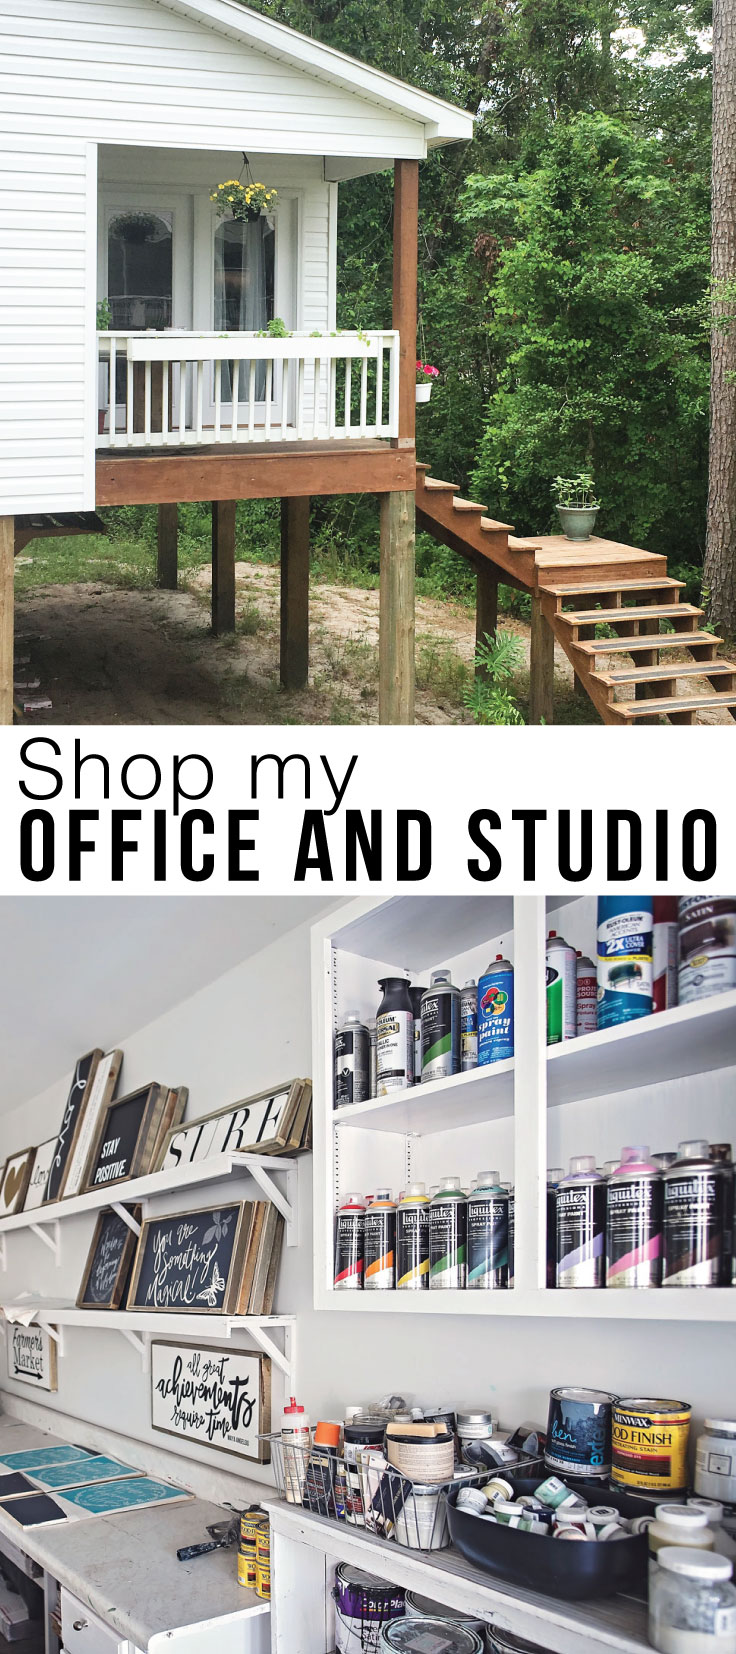 Shop my office and studio for my favorite list of supplies and tools that I love to use on a daily basis! Some of items may even surprise you. See NOW!